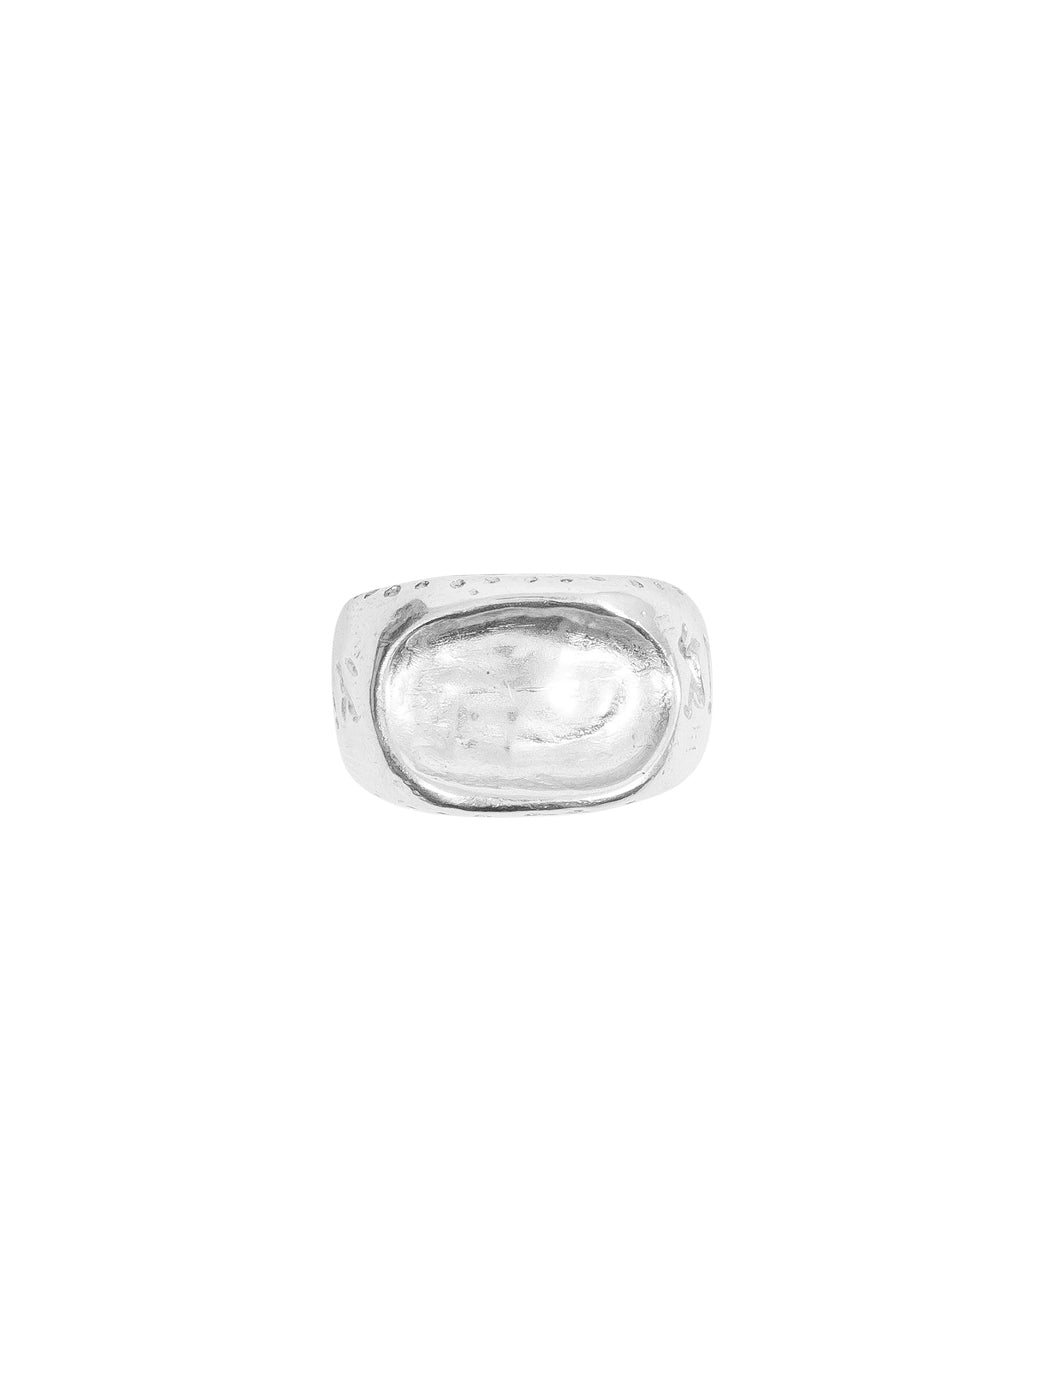 Fiorina Jewellery Men's Roman Numeral Ring Top